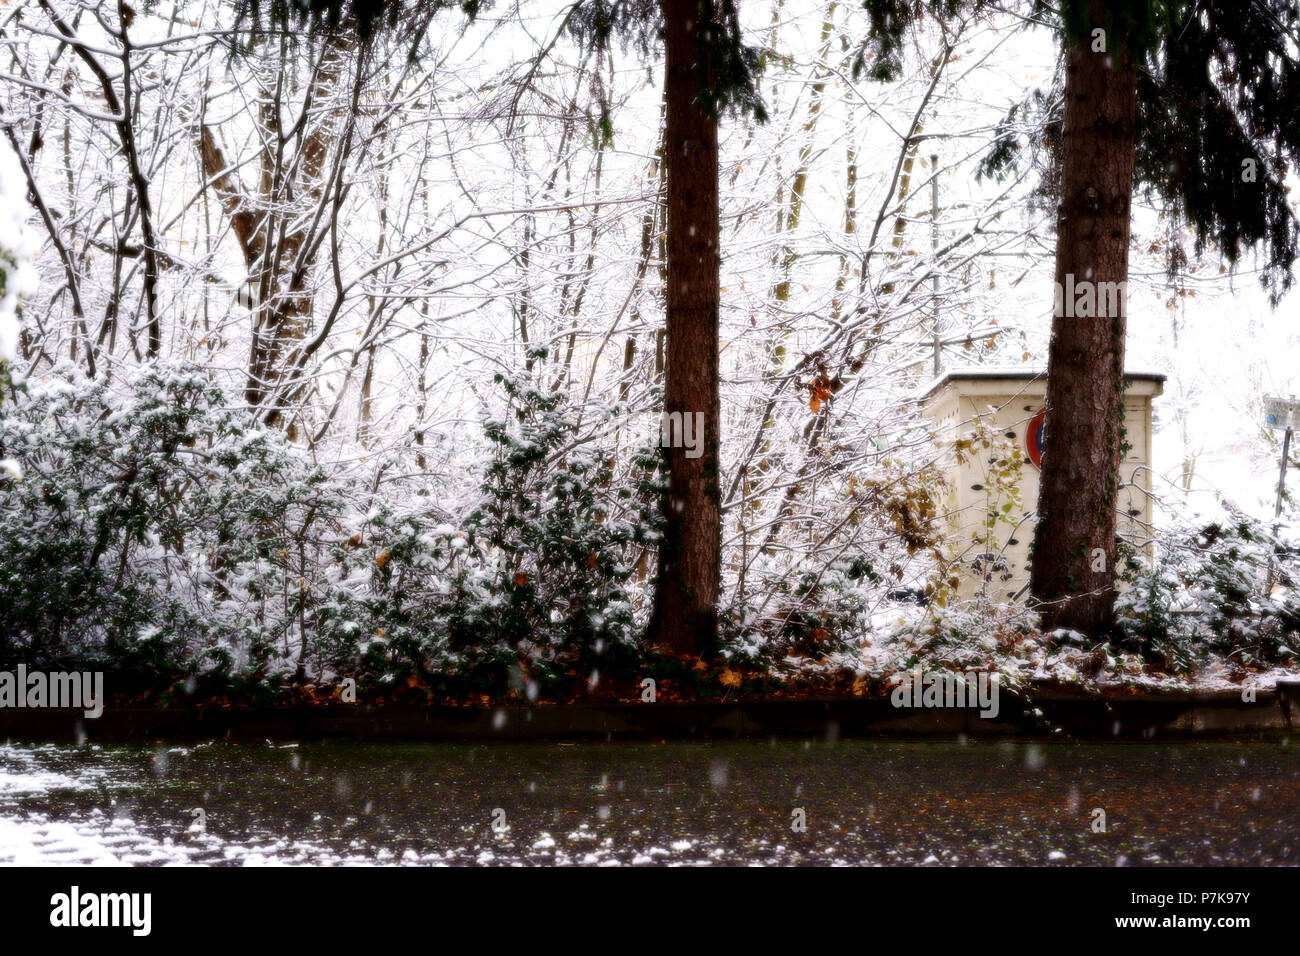 A snow-covered backyard in winter with trees and plants at snowfall - Stock Image